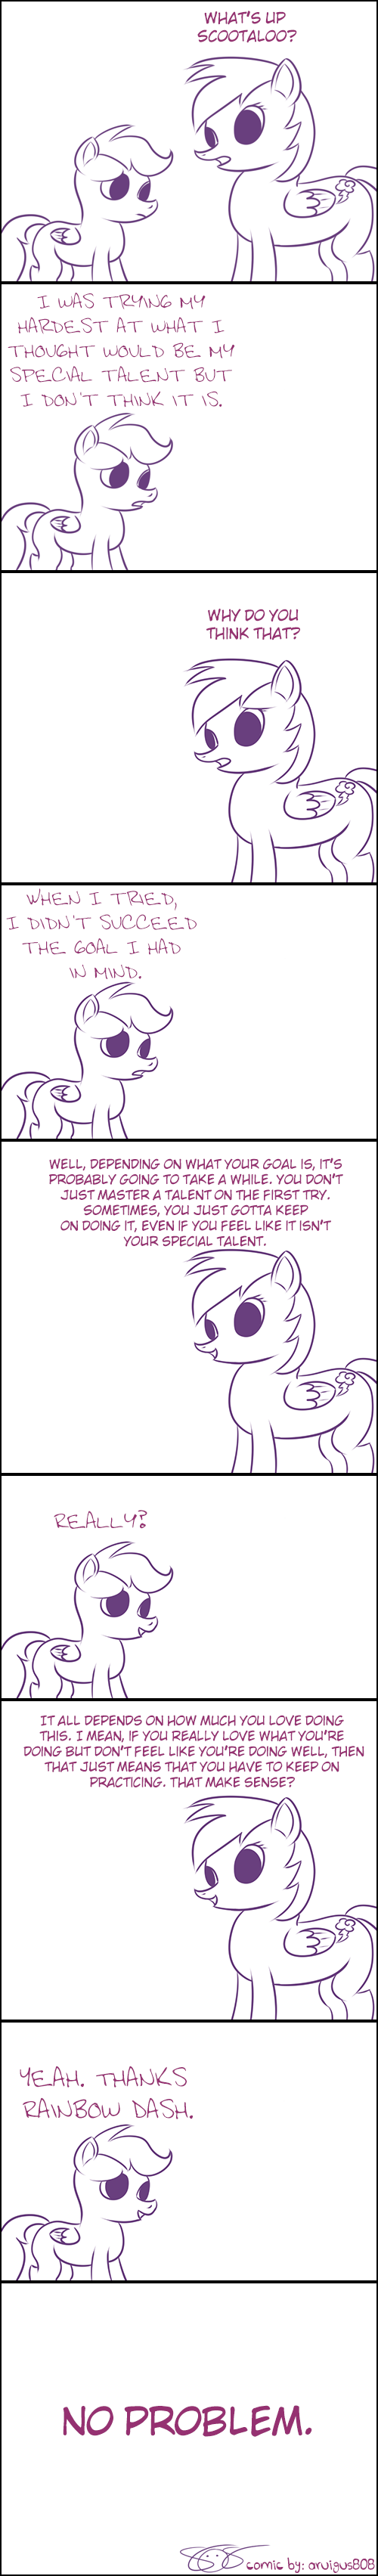 [COMIC]Do What you like to do by aruigus808